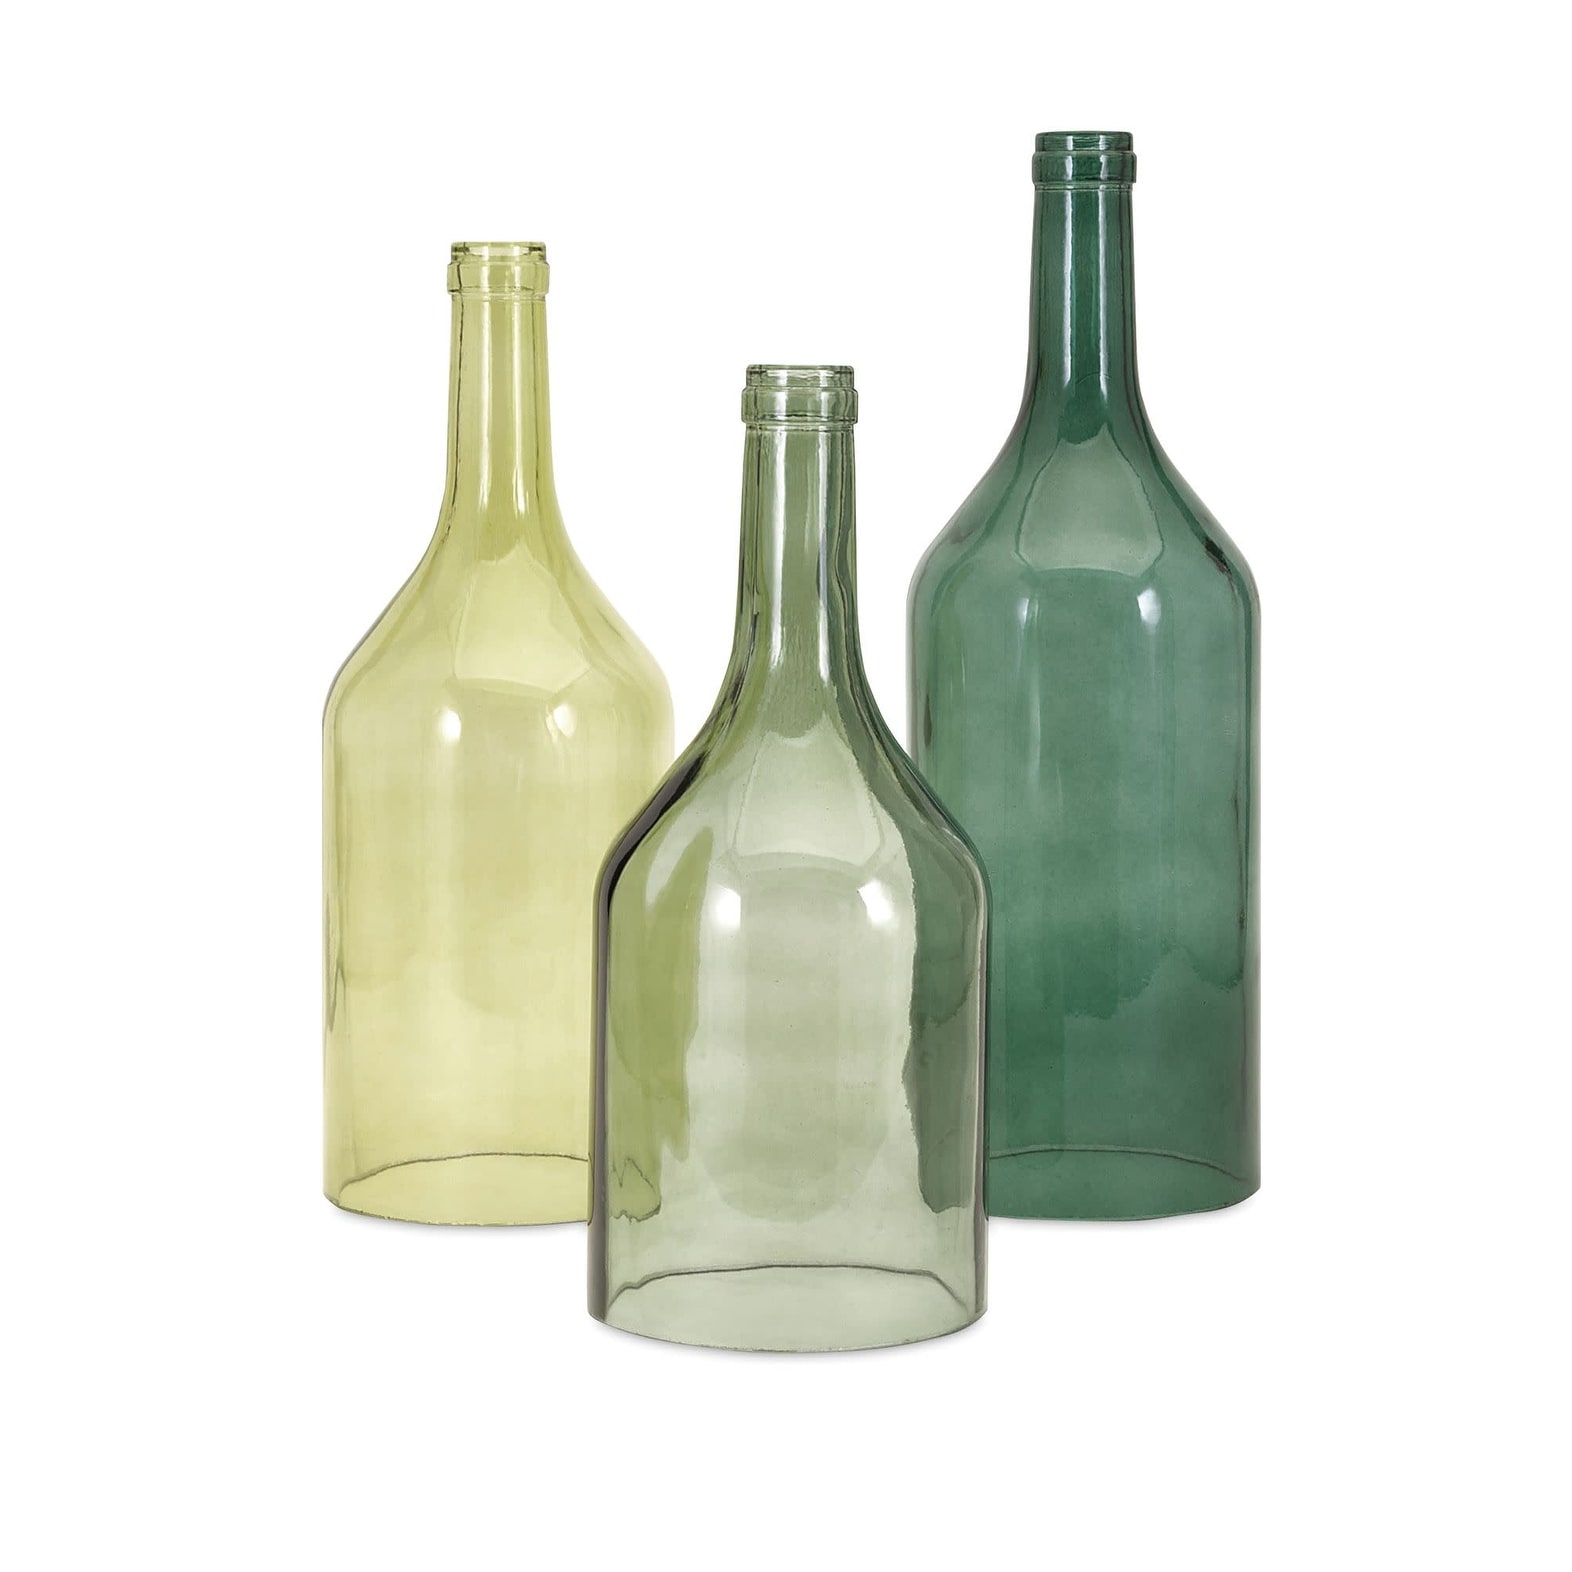 IMAX Home 96455-3 Persimmon Glass Bottles by Trisha Yearwood - Set of 3 - - Green